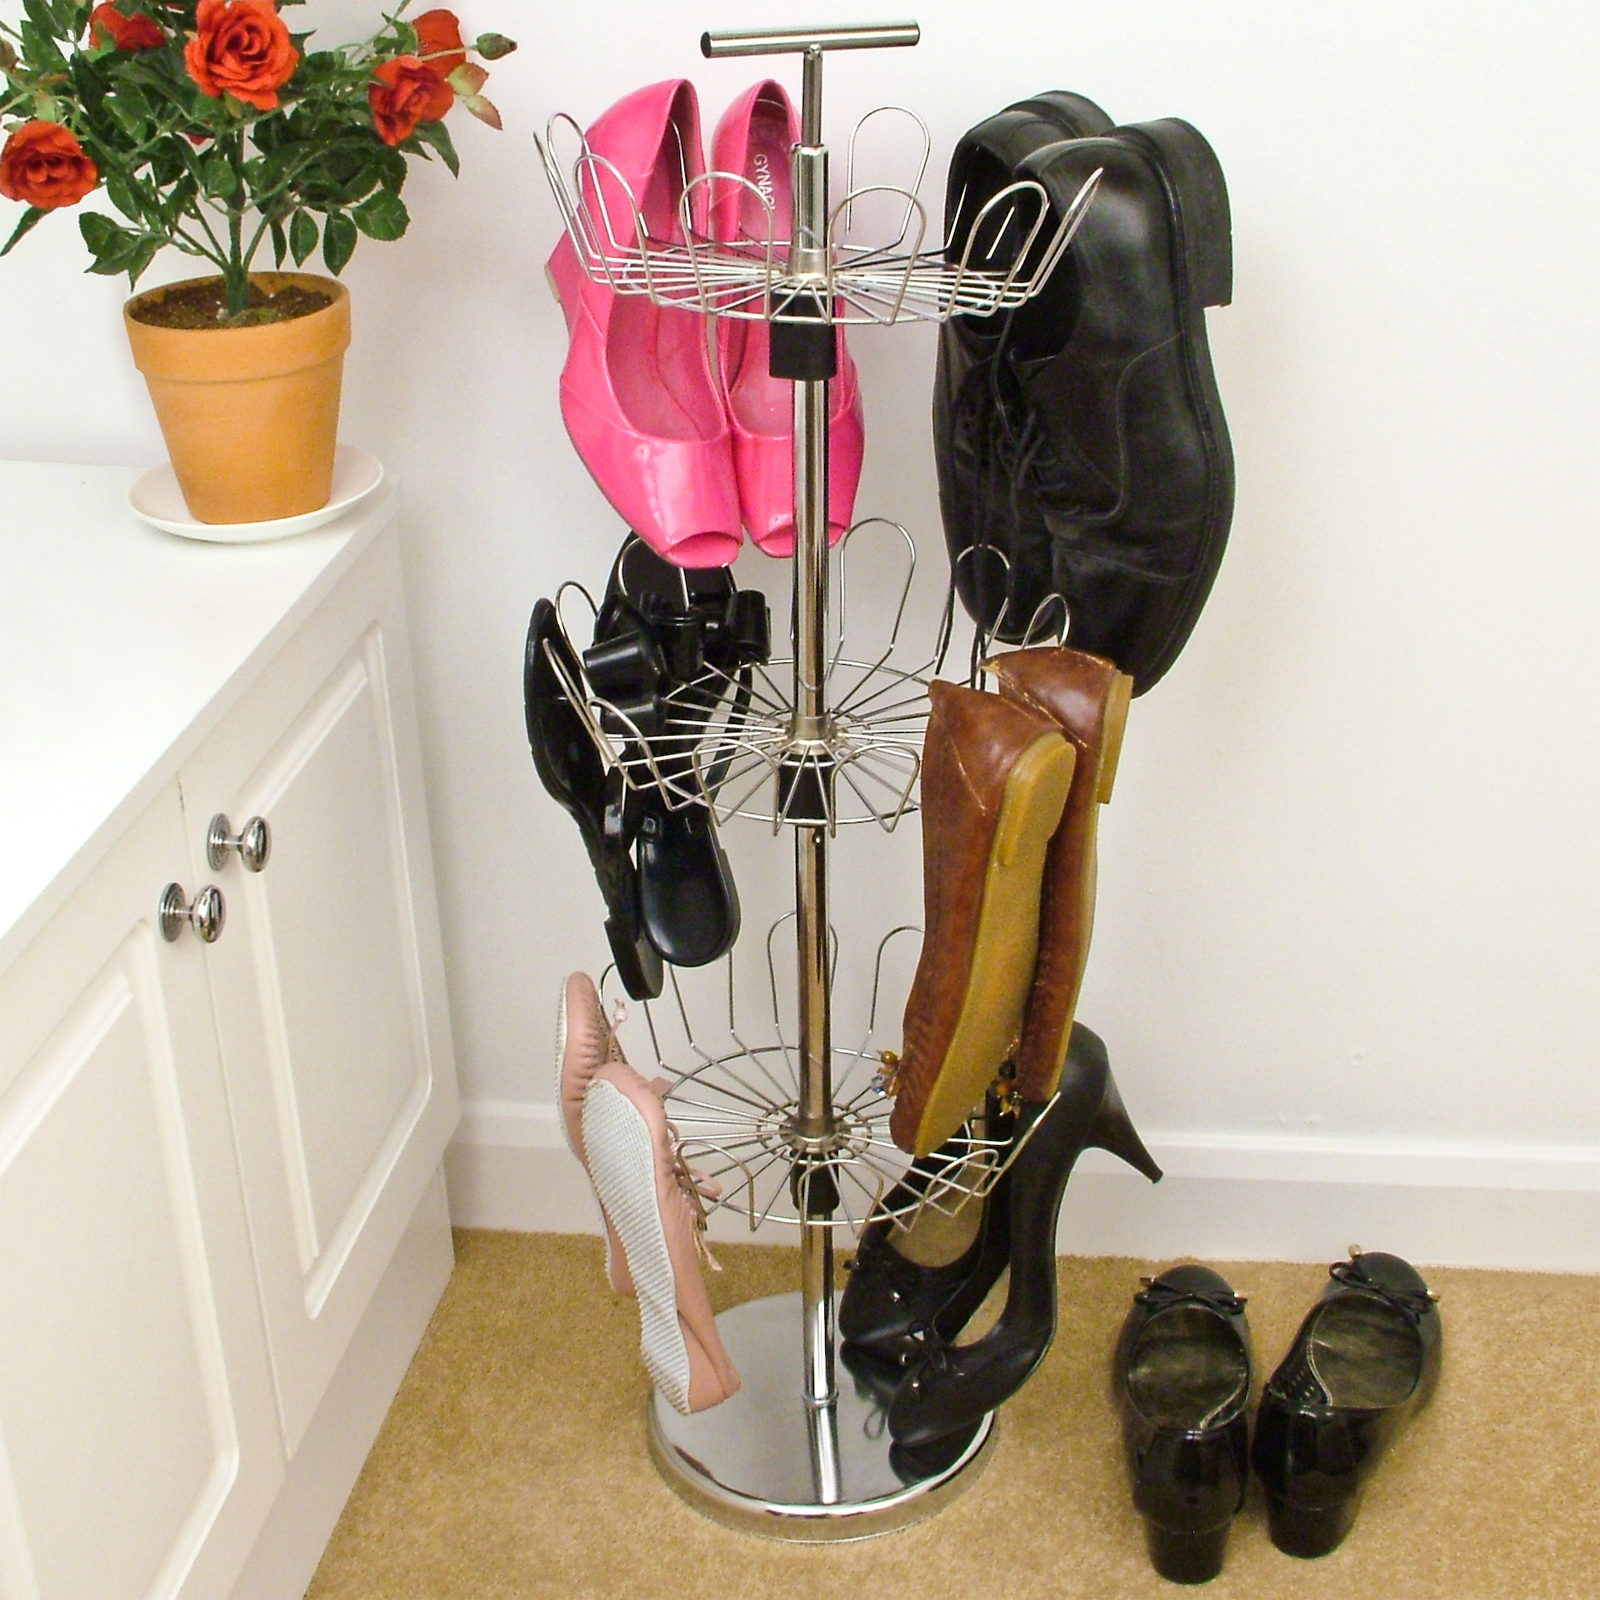 revolving rotating shoe tree stand storage rack 3 tier metal holds 18 pairs